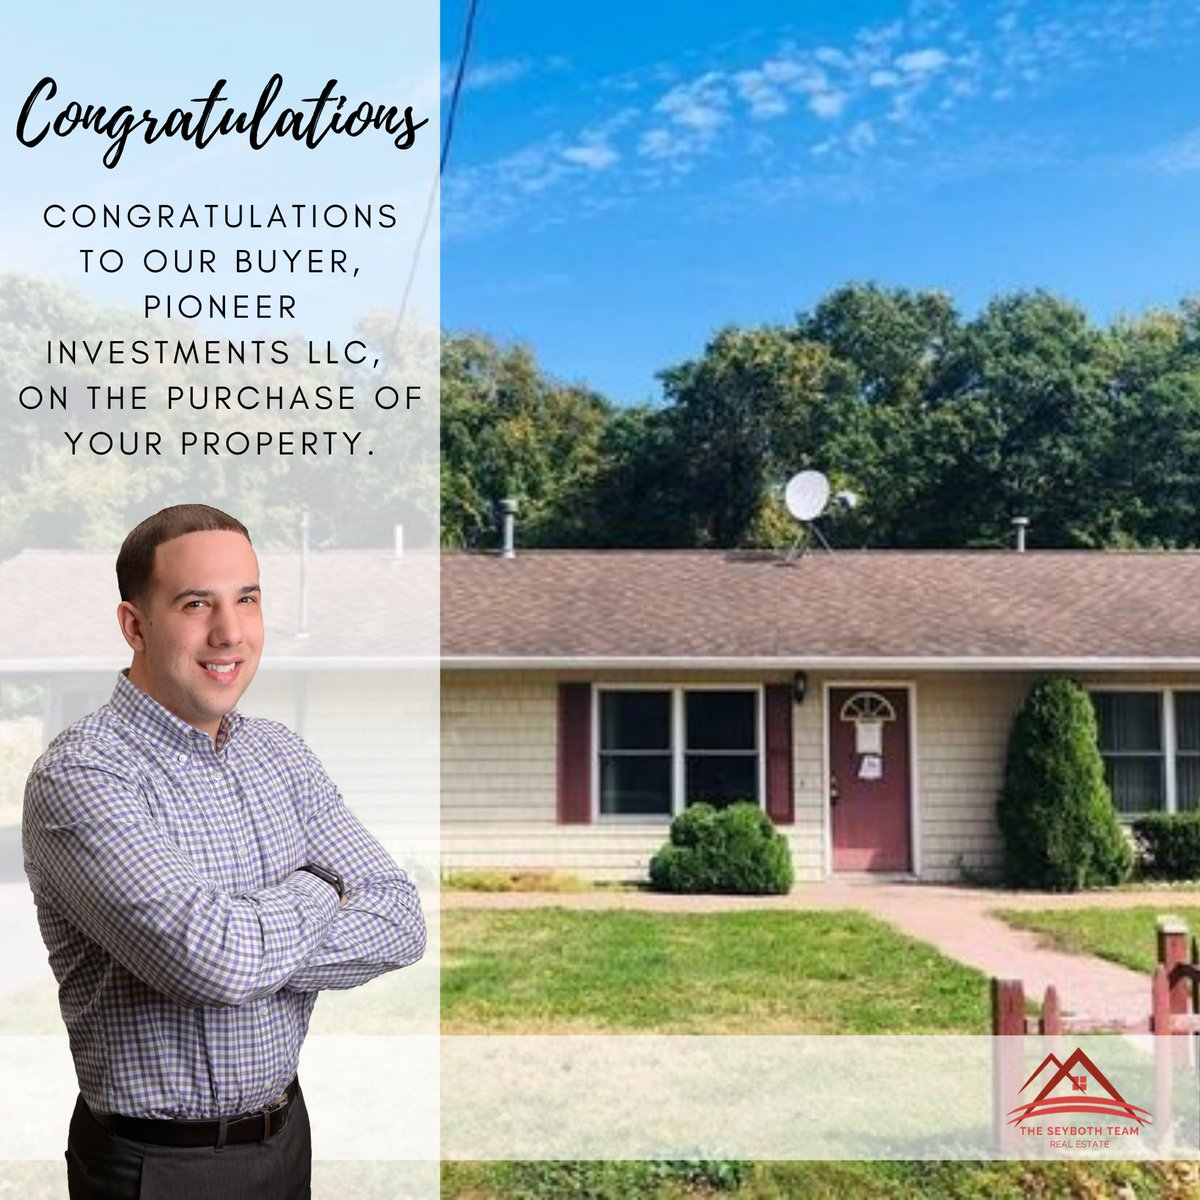 Congratulations to our buyer, Pioneer Investments LLC, on the purchase of your property. . . #TheSeybothTeam #realestate #rirealestate #rhodeisland #sold  #toprealtor #realestateinvesting #buyersagent #lovewhatidopic.twitter.com/ObjAdoccny